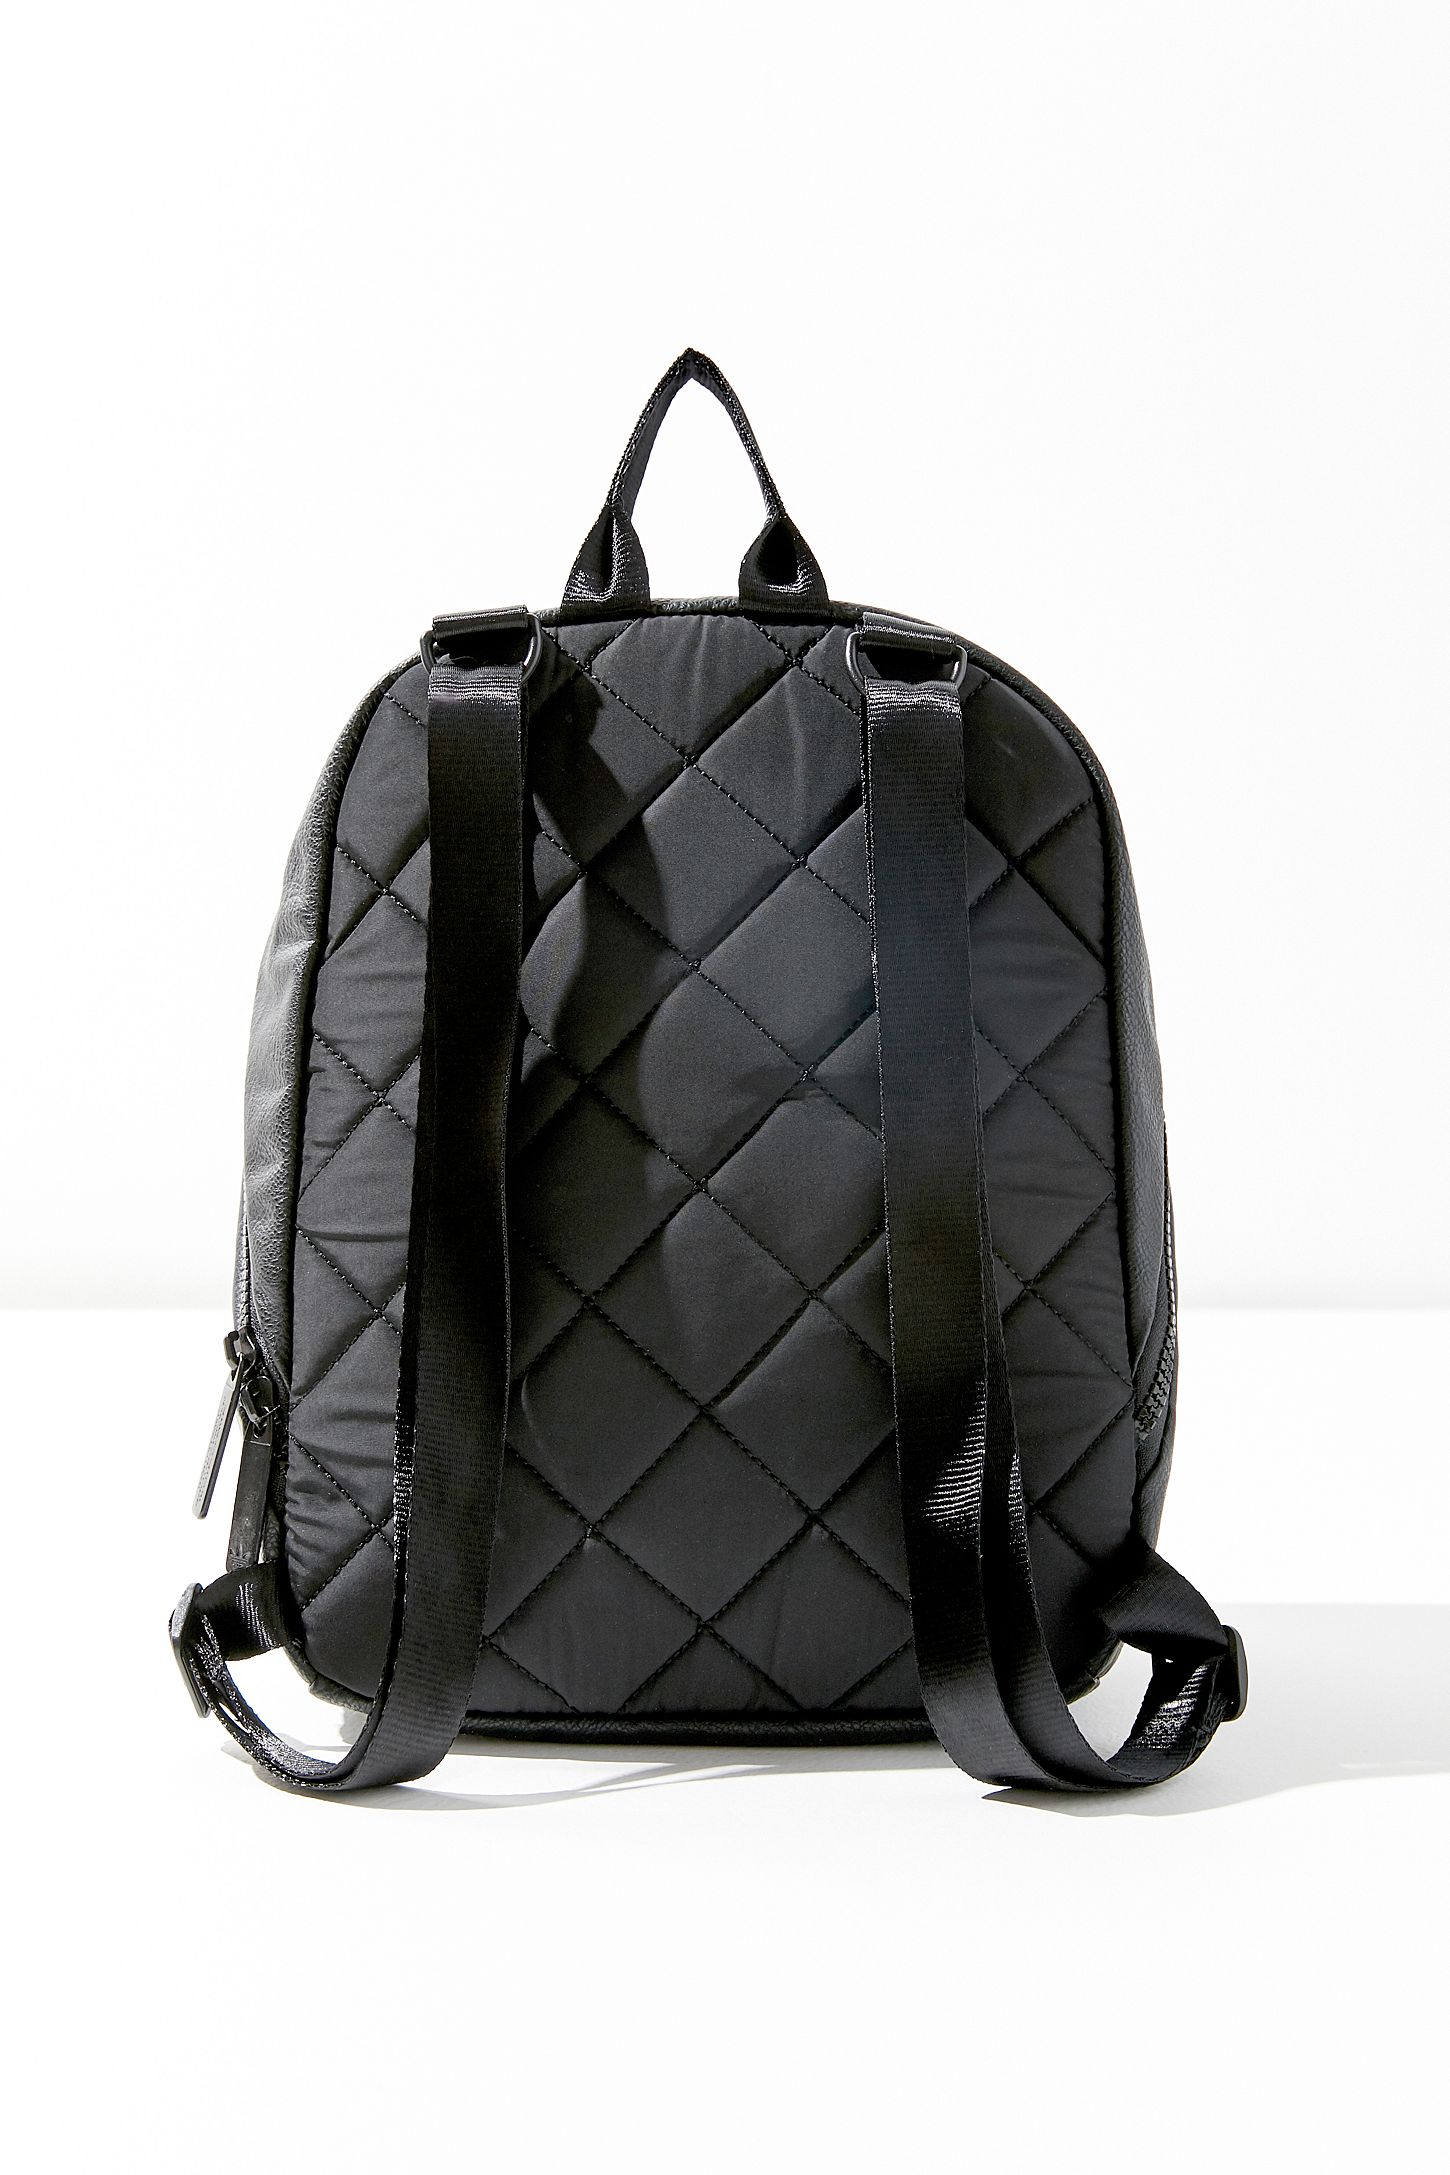 187e4fdd61cc Slide View  5  adidas Originals National Compact Premium Backpack